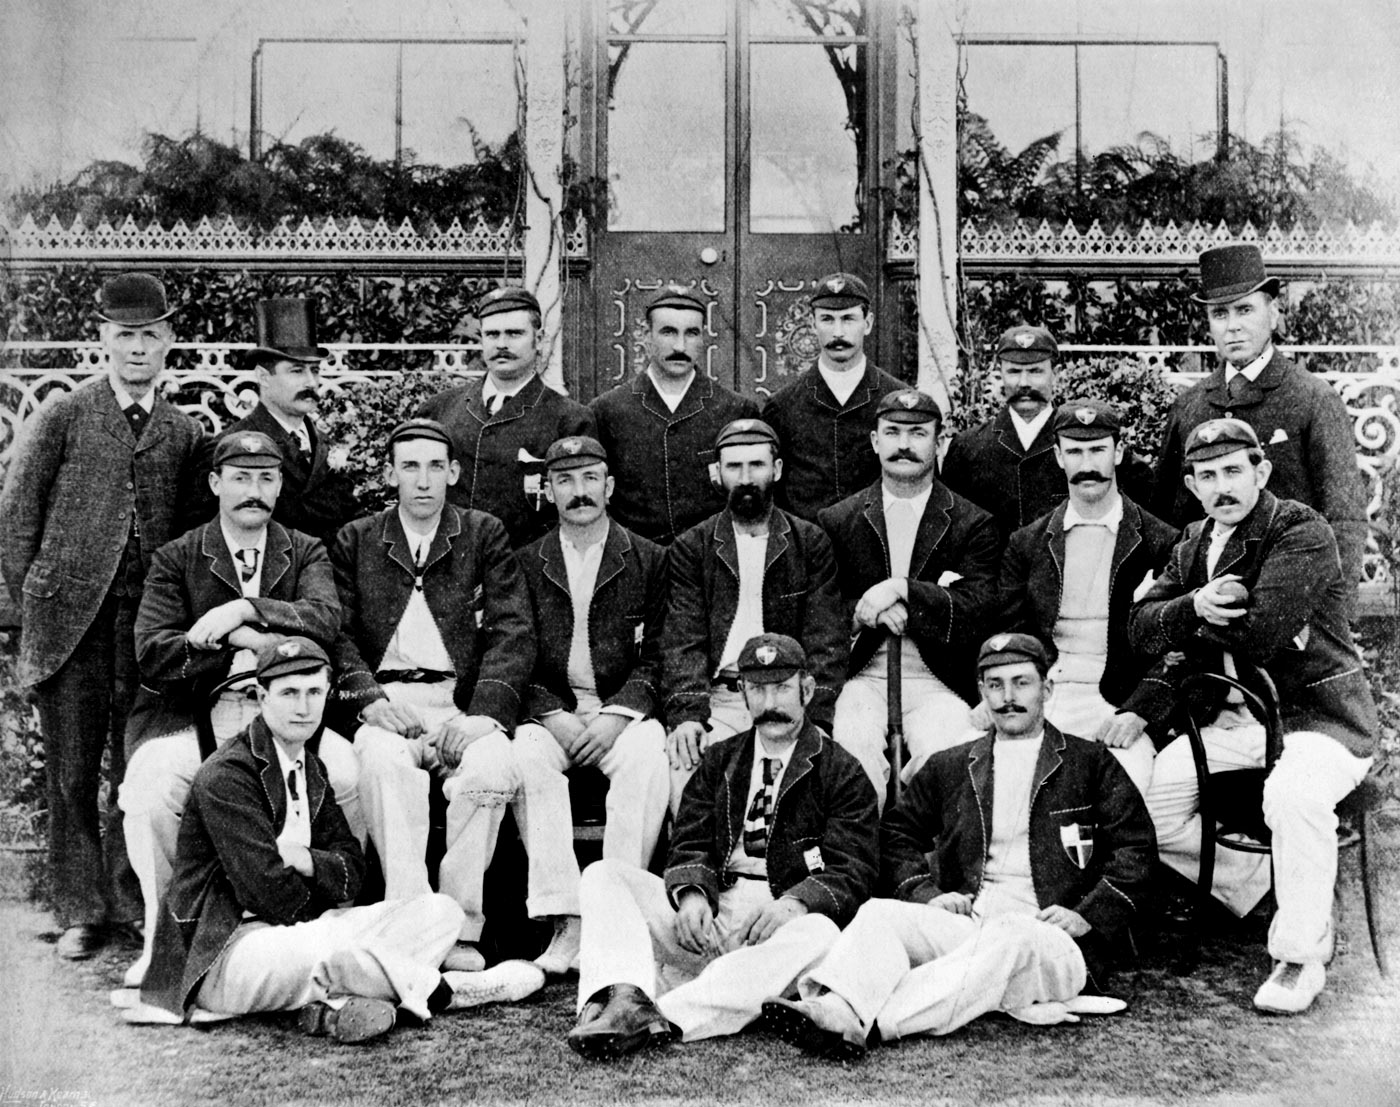 Arthur Coningham (seated on ground, middle): a role model - and not just in the facial hair department